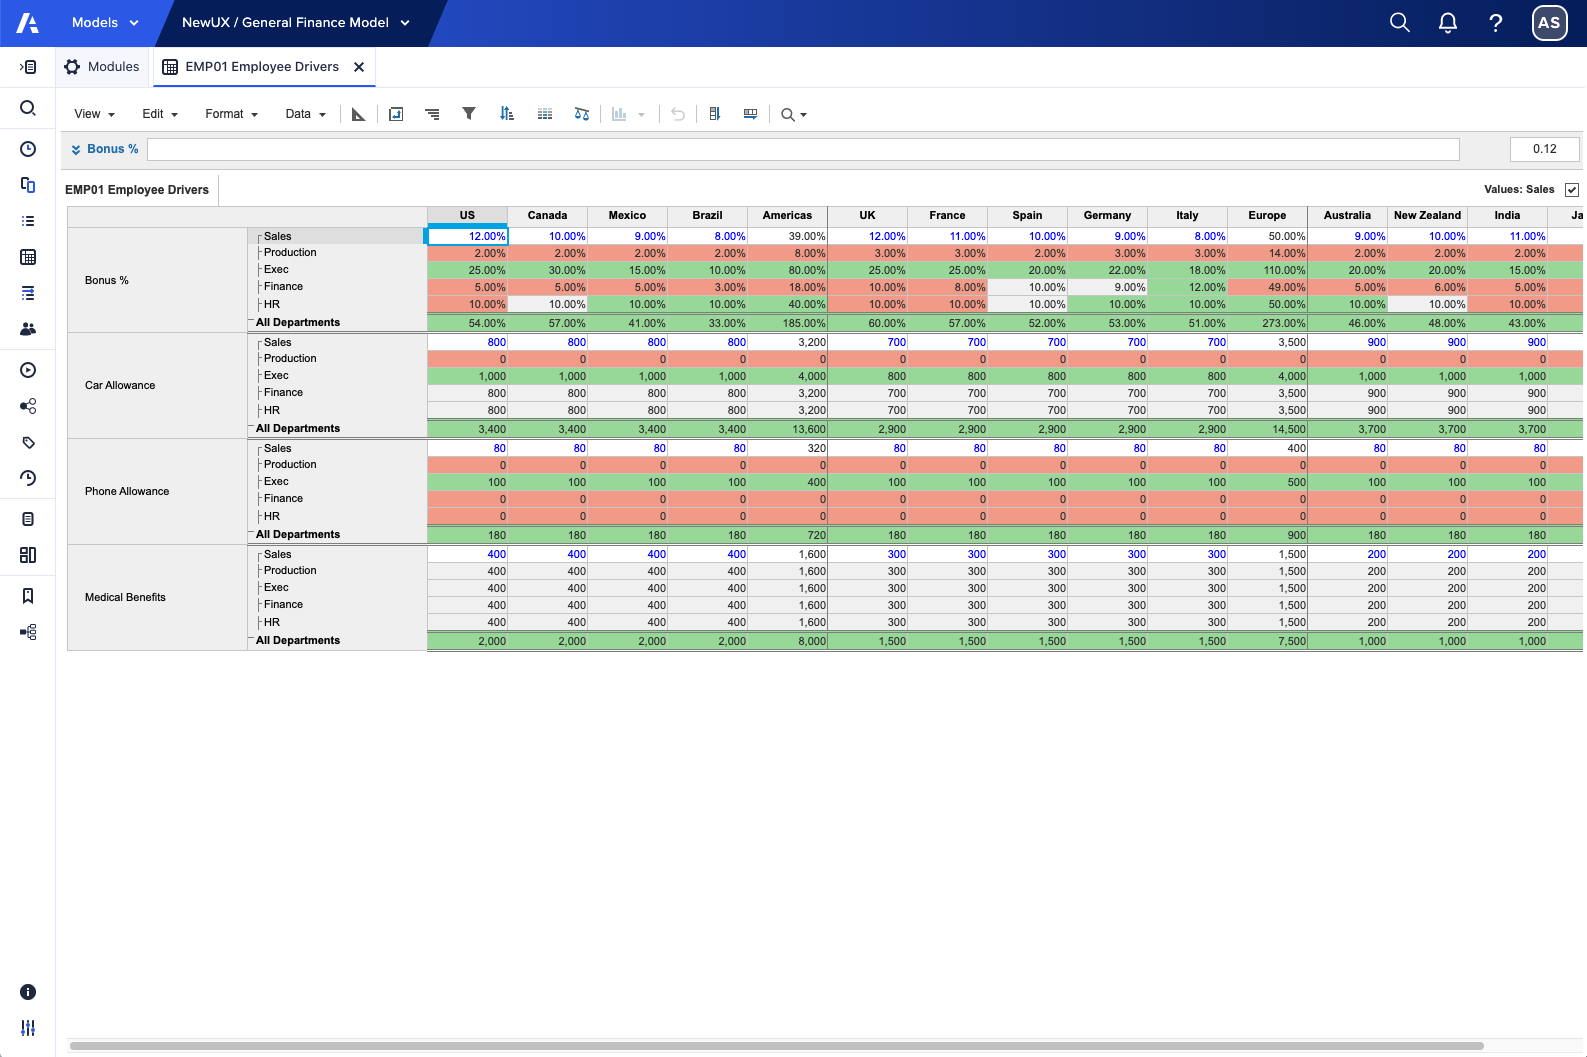 Sales department set as the base data for comparisons.